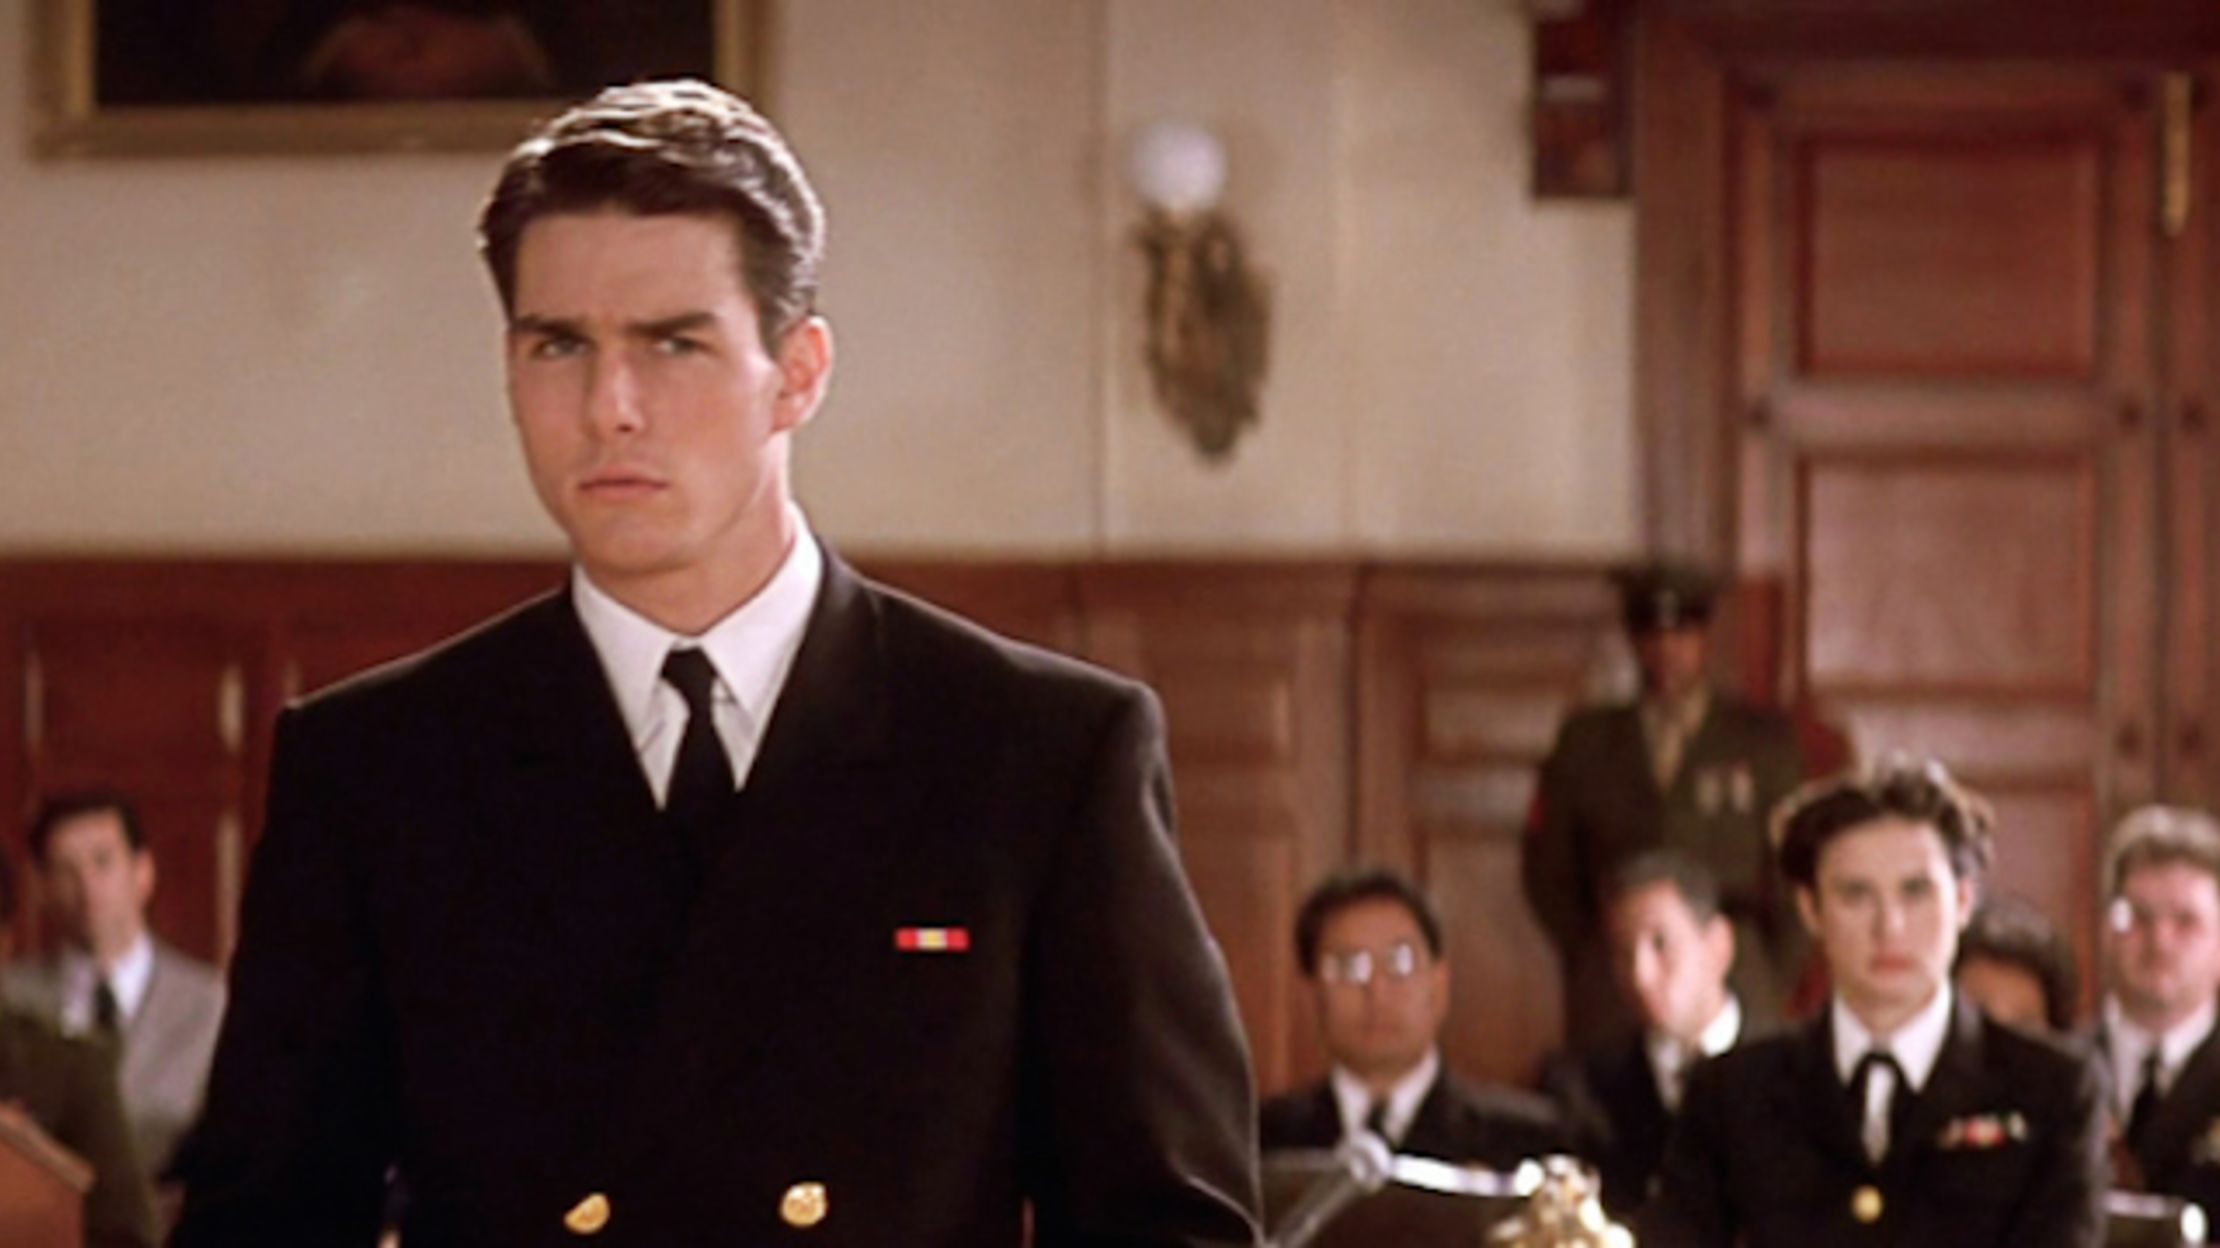 17 Truthful Facts About A Few Good Men | Mental Floss